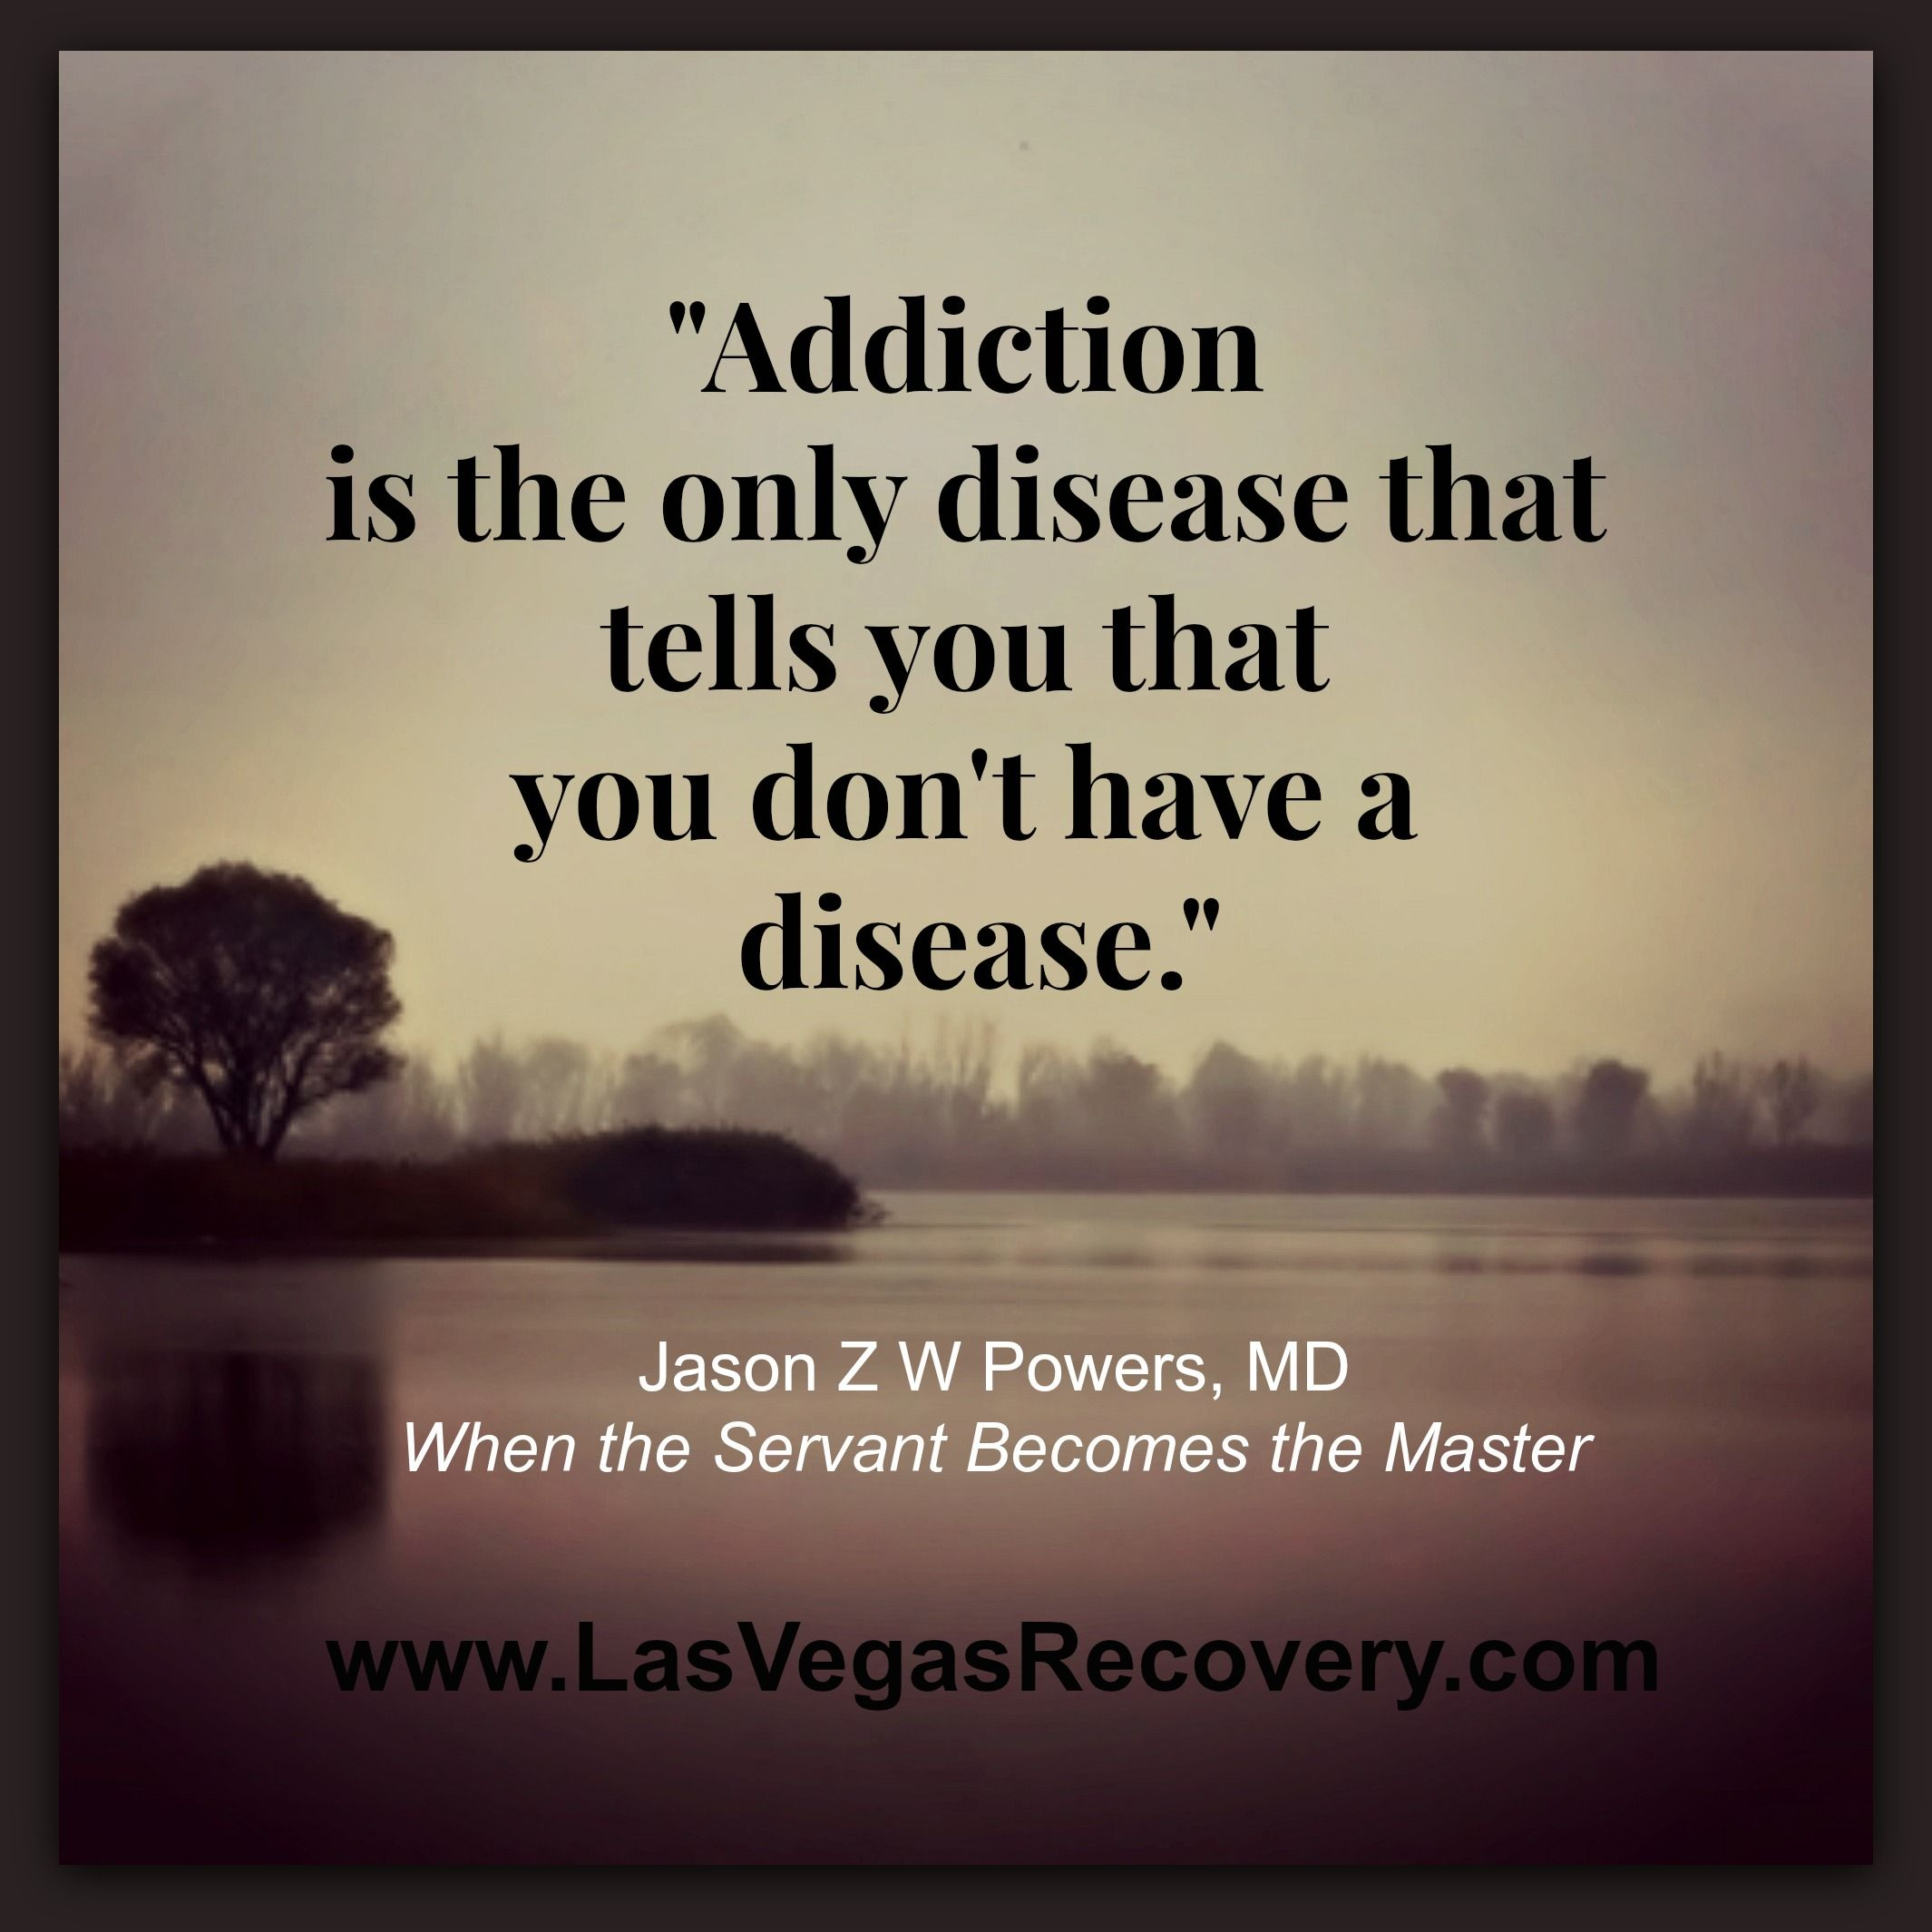 Tattoo Quotes Drug Addiction: Addiction Is The Only Disease That Tells You That You Don